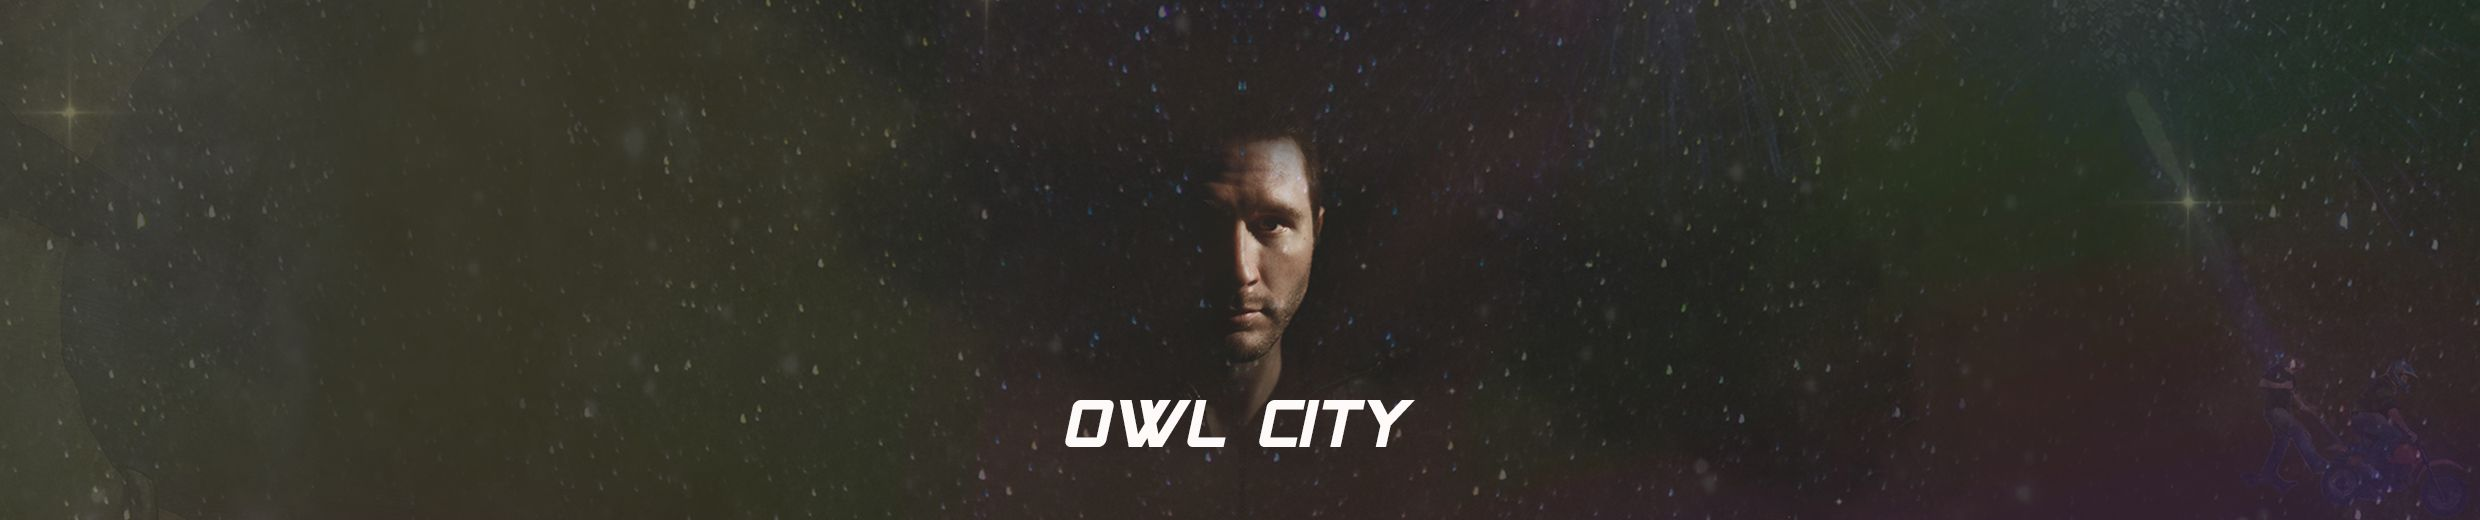 OwlCityOfficial | Owl City Official | Free Listening on SoundCloud